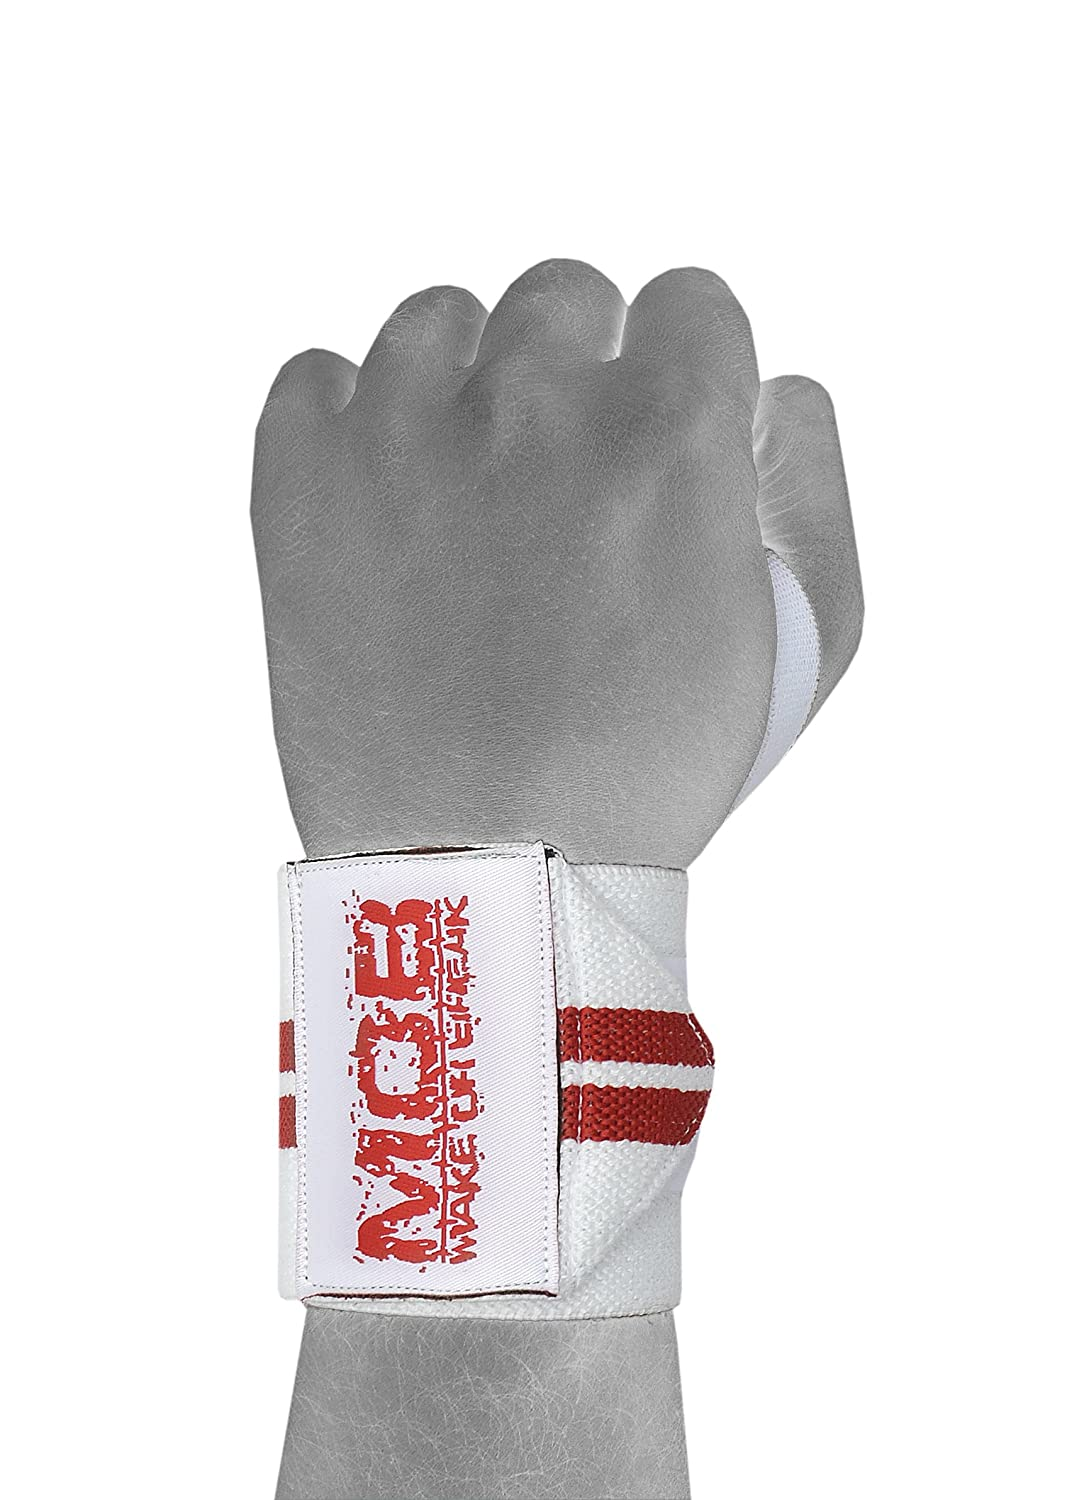 White-Red, 13 Power Weight Lifting Wrist Wraps Supports Gym Training Crossfit Bodybuilding Workout Exercise Fist Straps